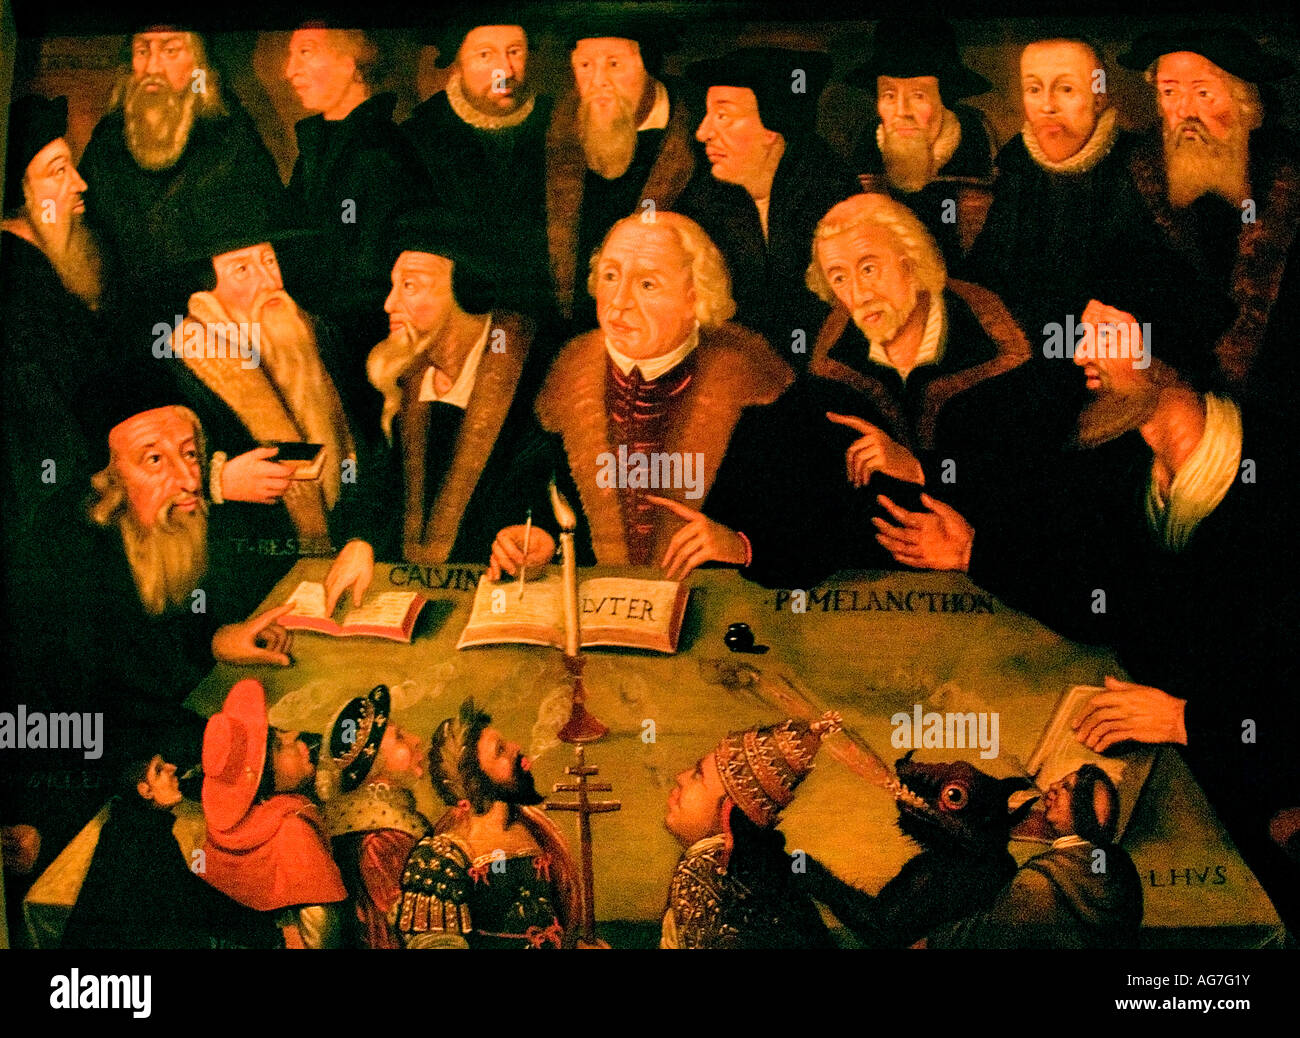 Luther in crisis with reformation 1625 1650 Centre Luther at the right Calvin Melachthon - Stock Image